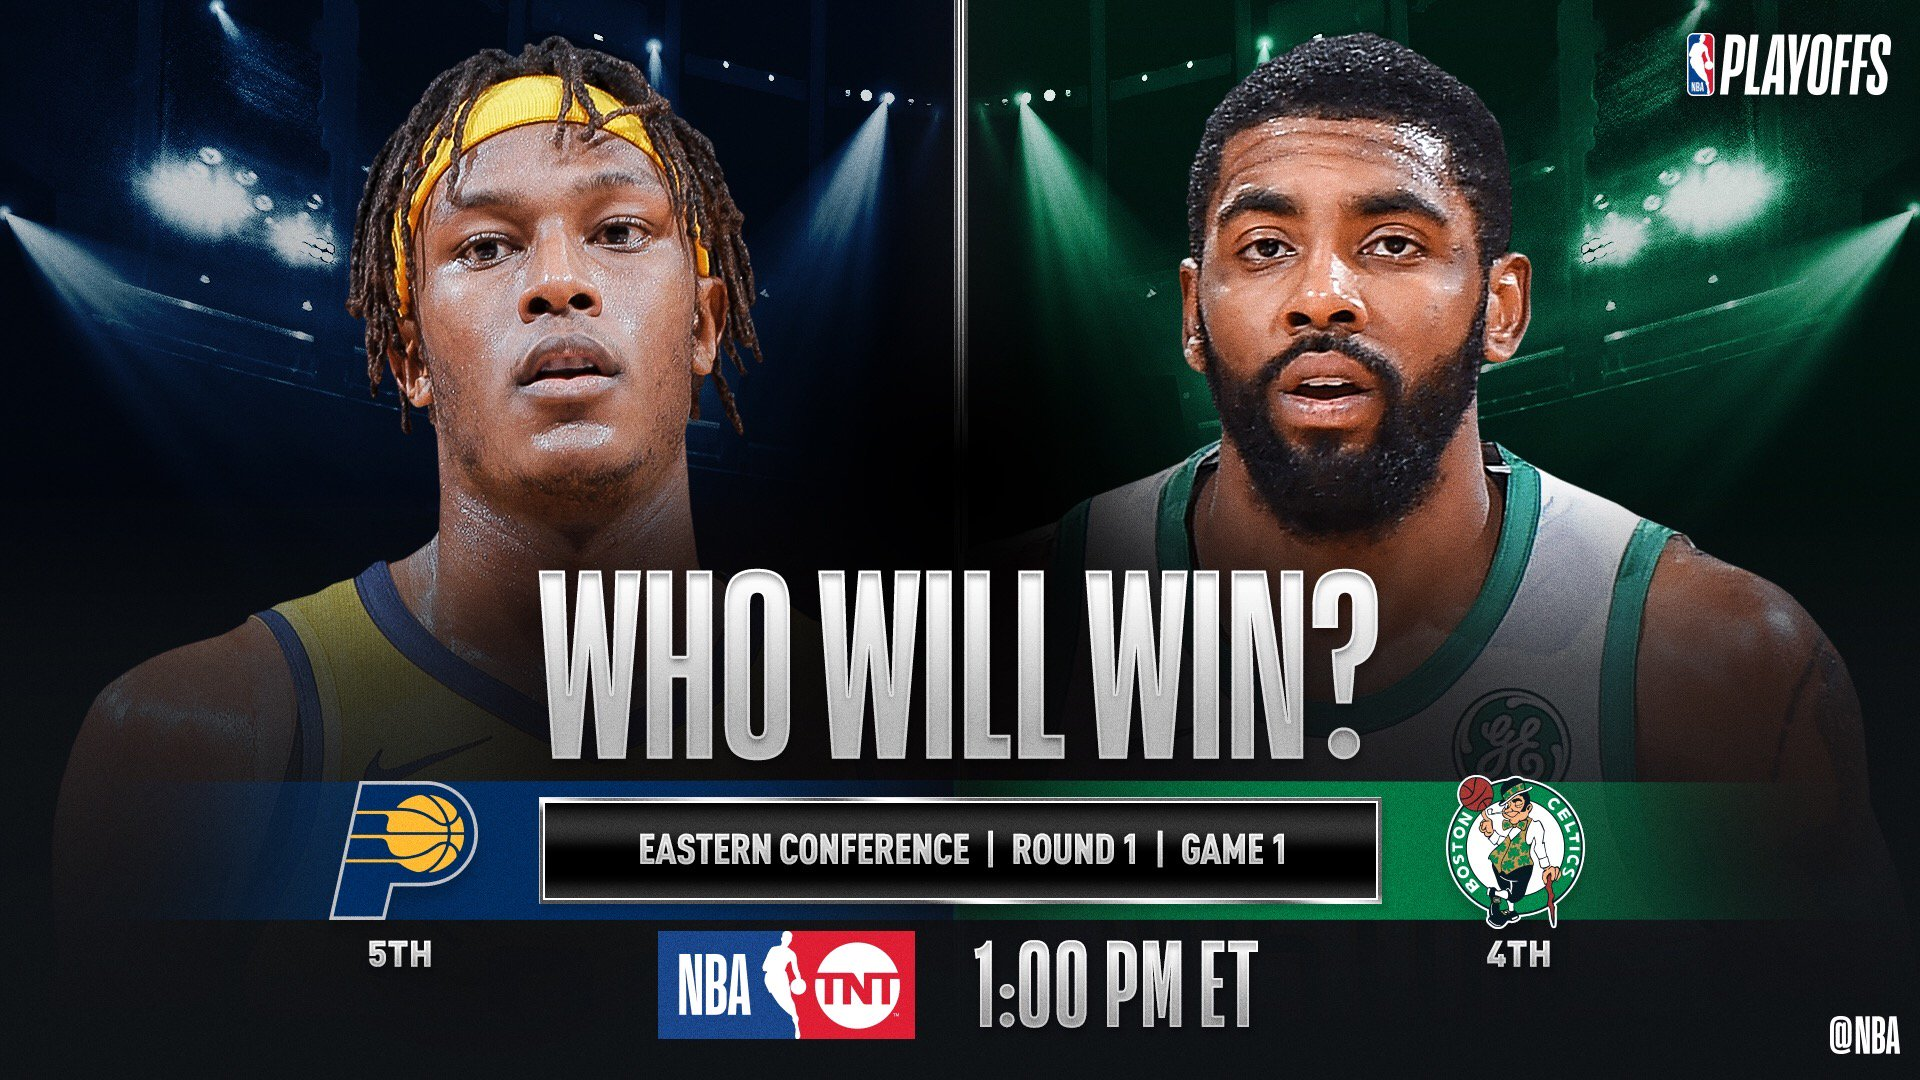 �� No. 5 in the East @Pacers visit No. 4 @celtics to open Sunday's #NBAPlayoffs action (1:00pm/et, @NBAonTNT)! �� https://t.co/xGLE2FUQgt